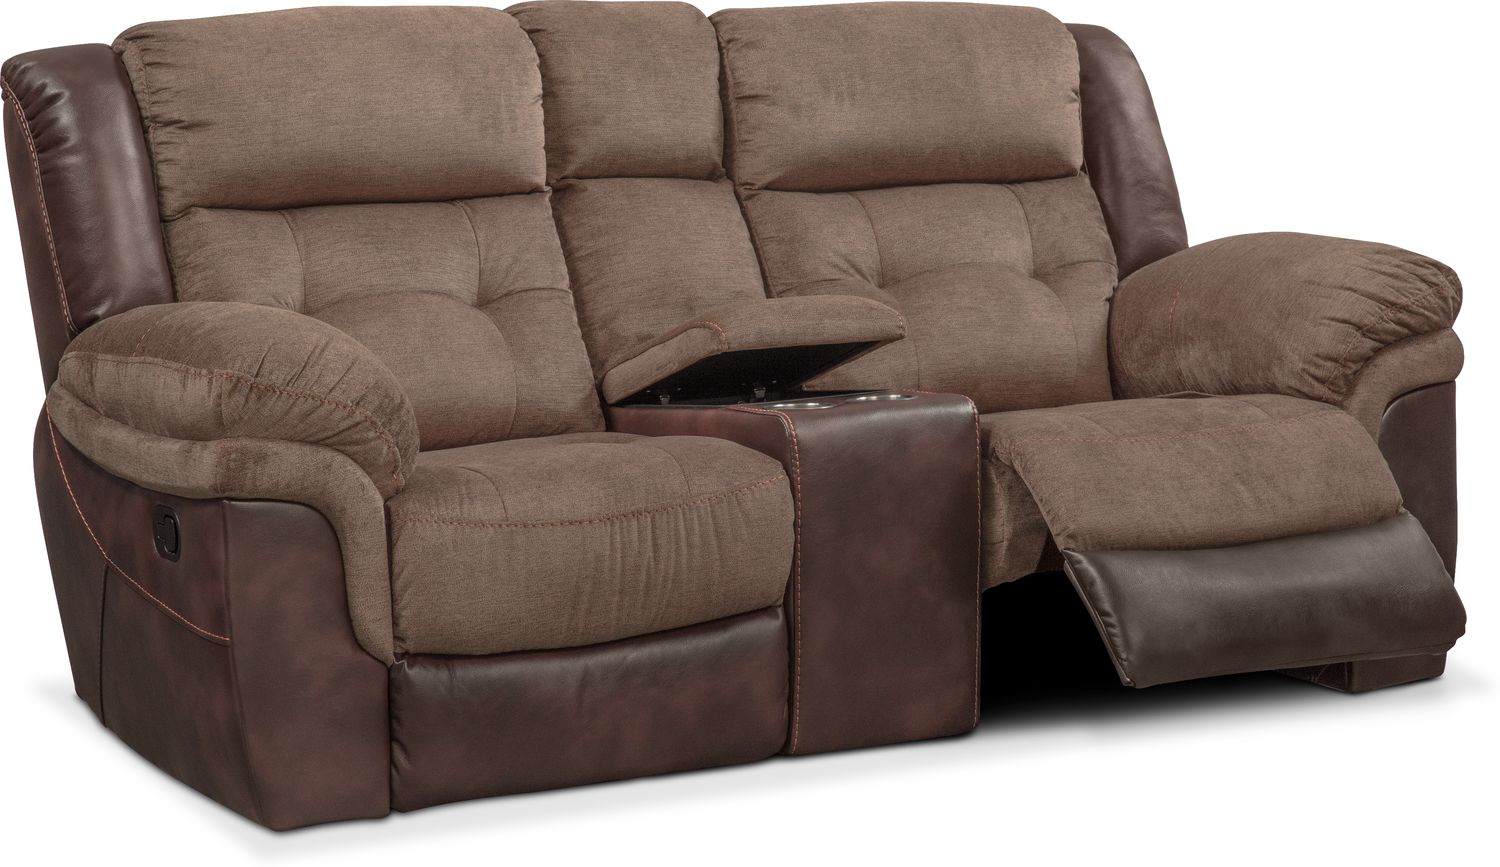 Attirant Living Room Furniture   Tacoma Manual Reclining Loveseat With Console    Brown